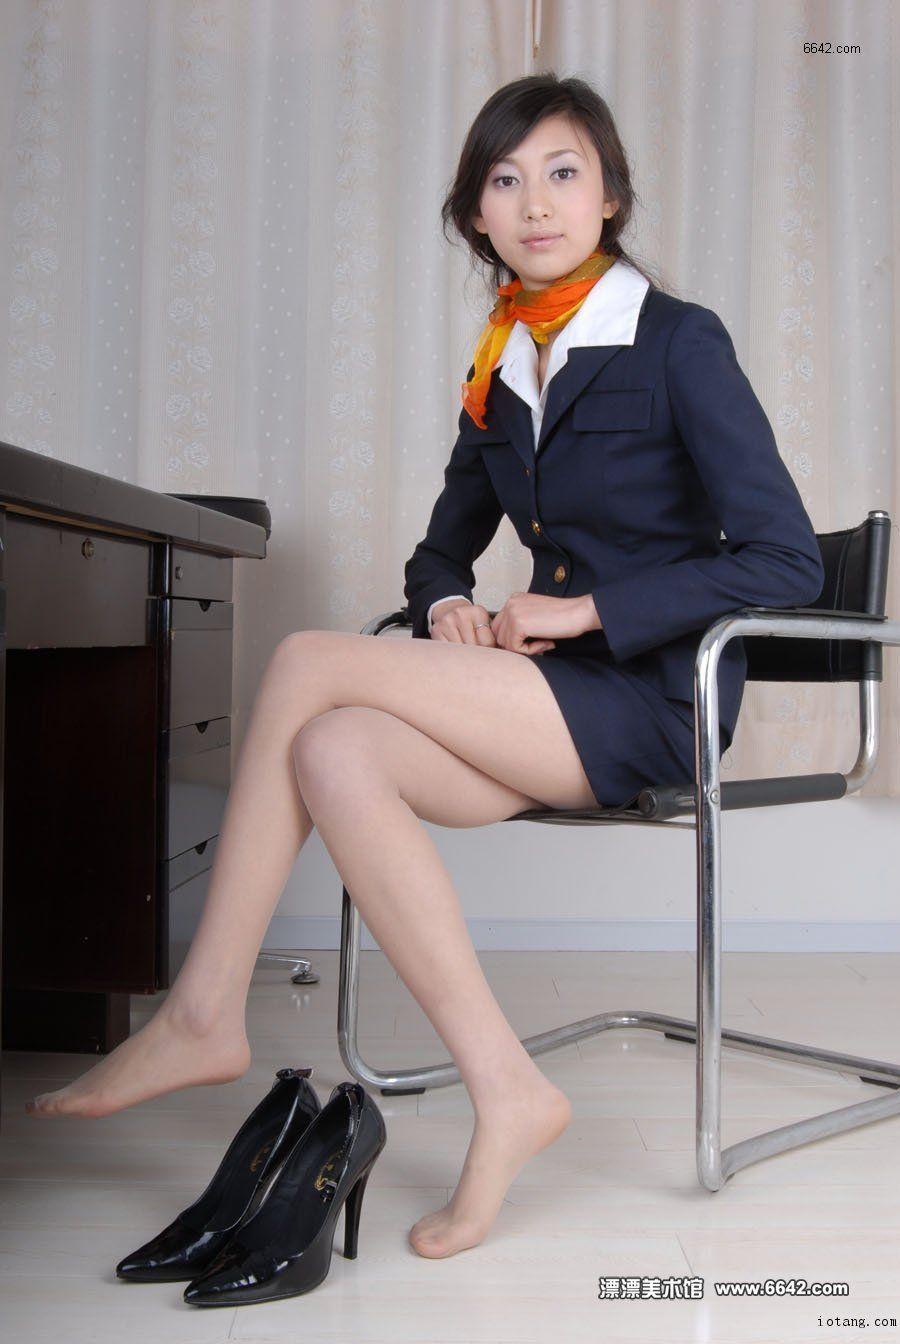 Japanese putting on pantyhose